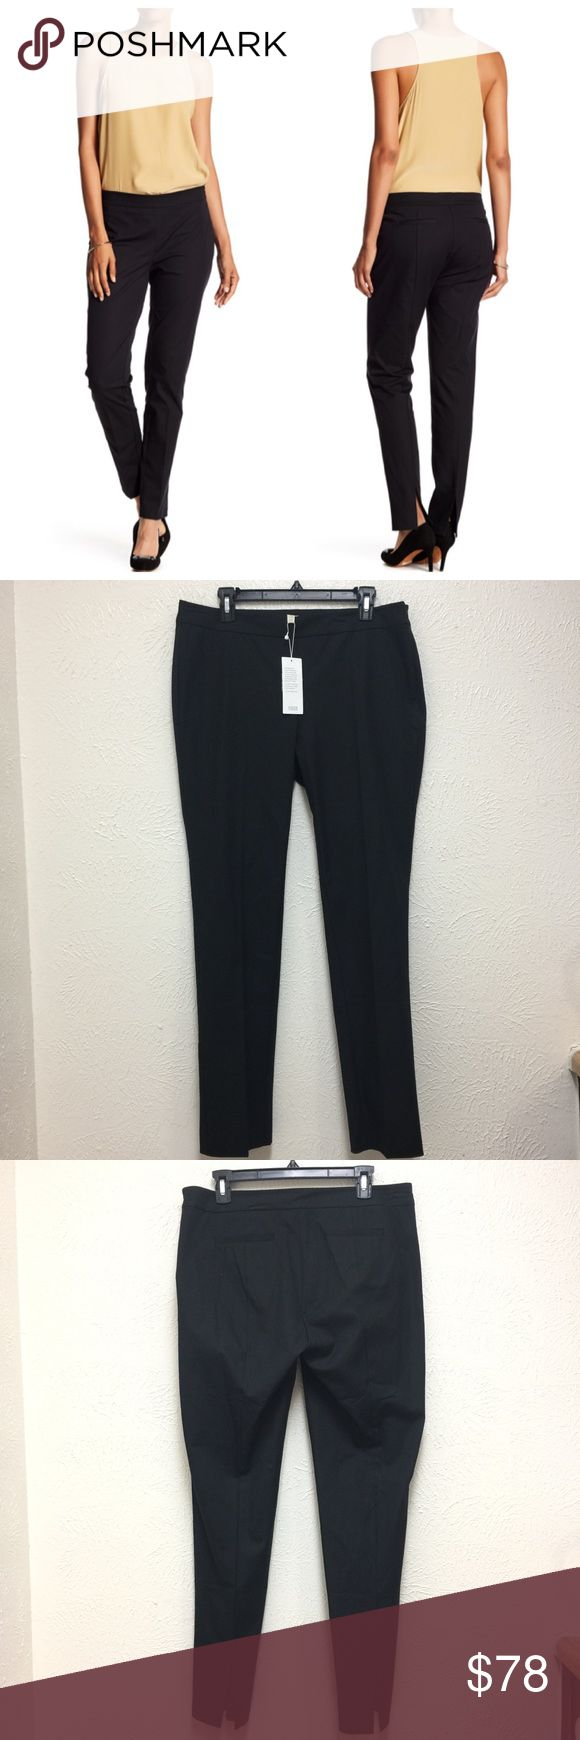 Eileen Fisher Black Slim Trousers Size M New with tag.  Women size M Retail: $158 plus tax  ❌NO Trade.  ❌Lowball Offer Will be IGNORED&BLOCKED.  ⚡️Serious Buyer ONLY⚡️NO DRAMA! ⭐️Same/next day shipping via USPS ⚠I video record all sales from packing to shipping so we are both protected ⚠ Eileen Fisher Pants Trousers